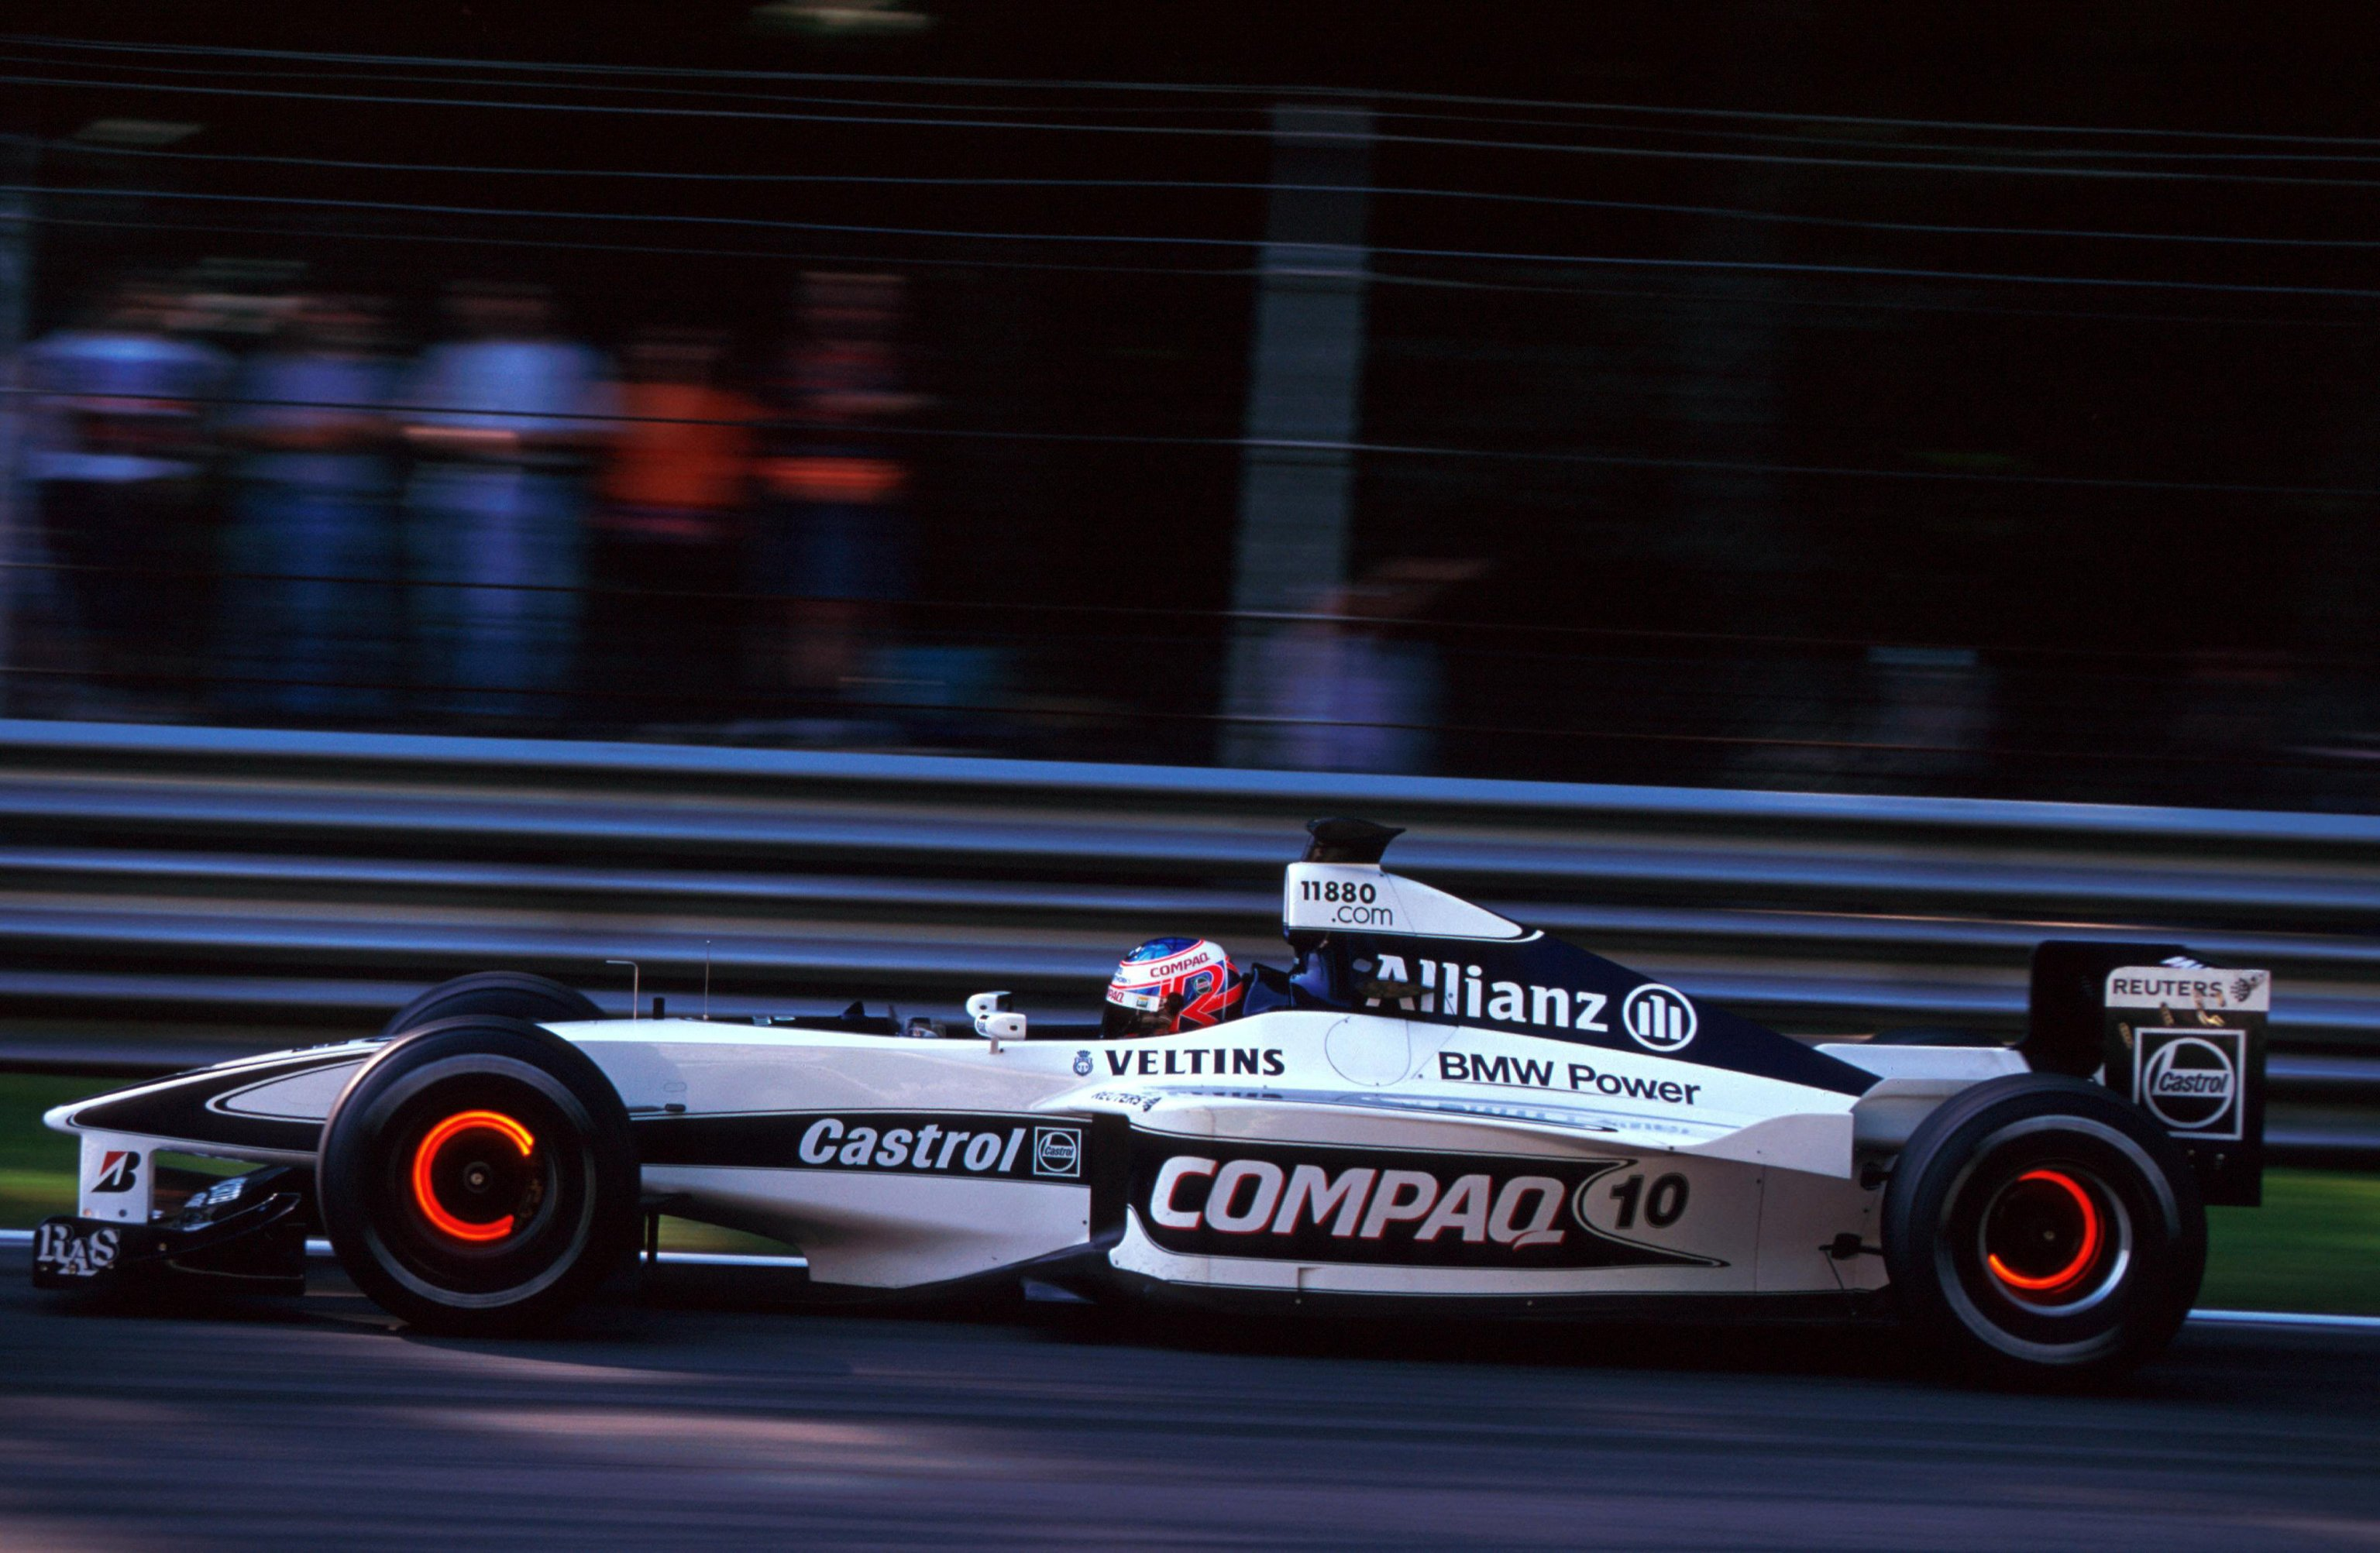 jenson-button-bmw-williams-fw22-italy-gp-monza-f1-2000